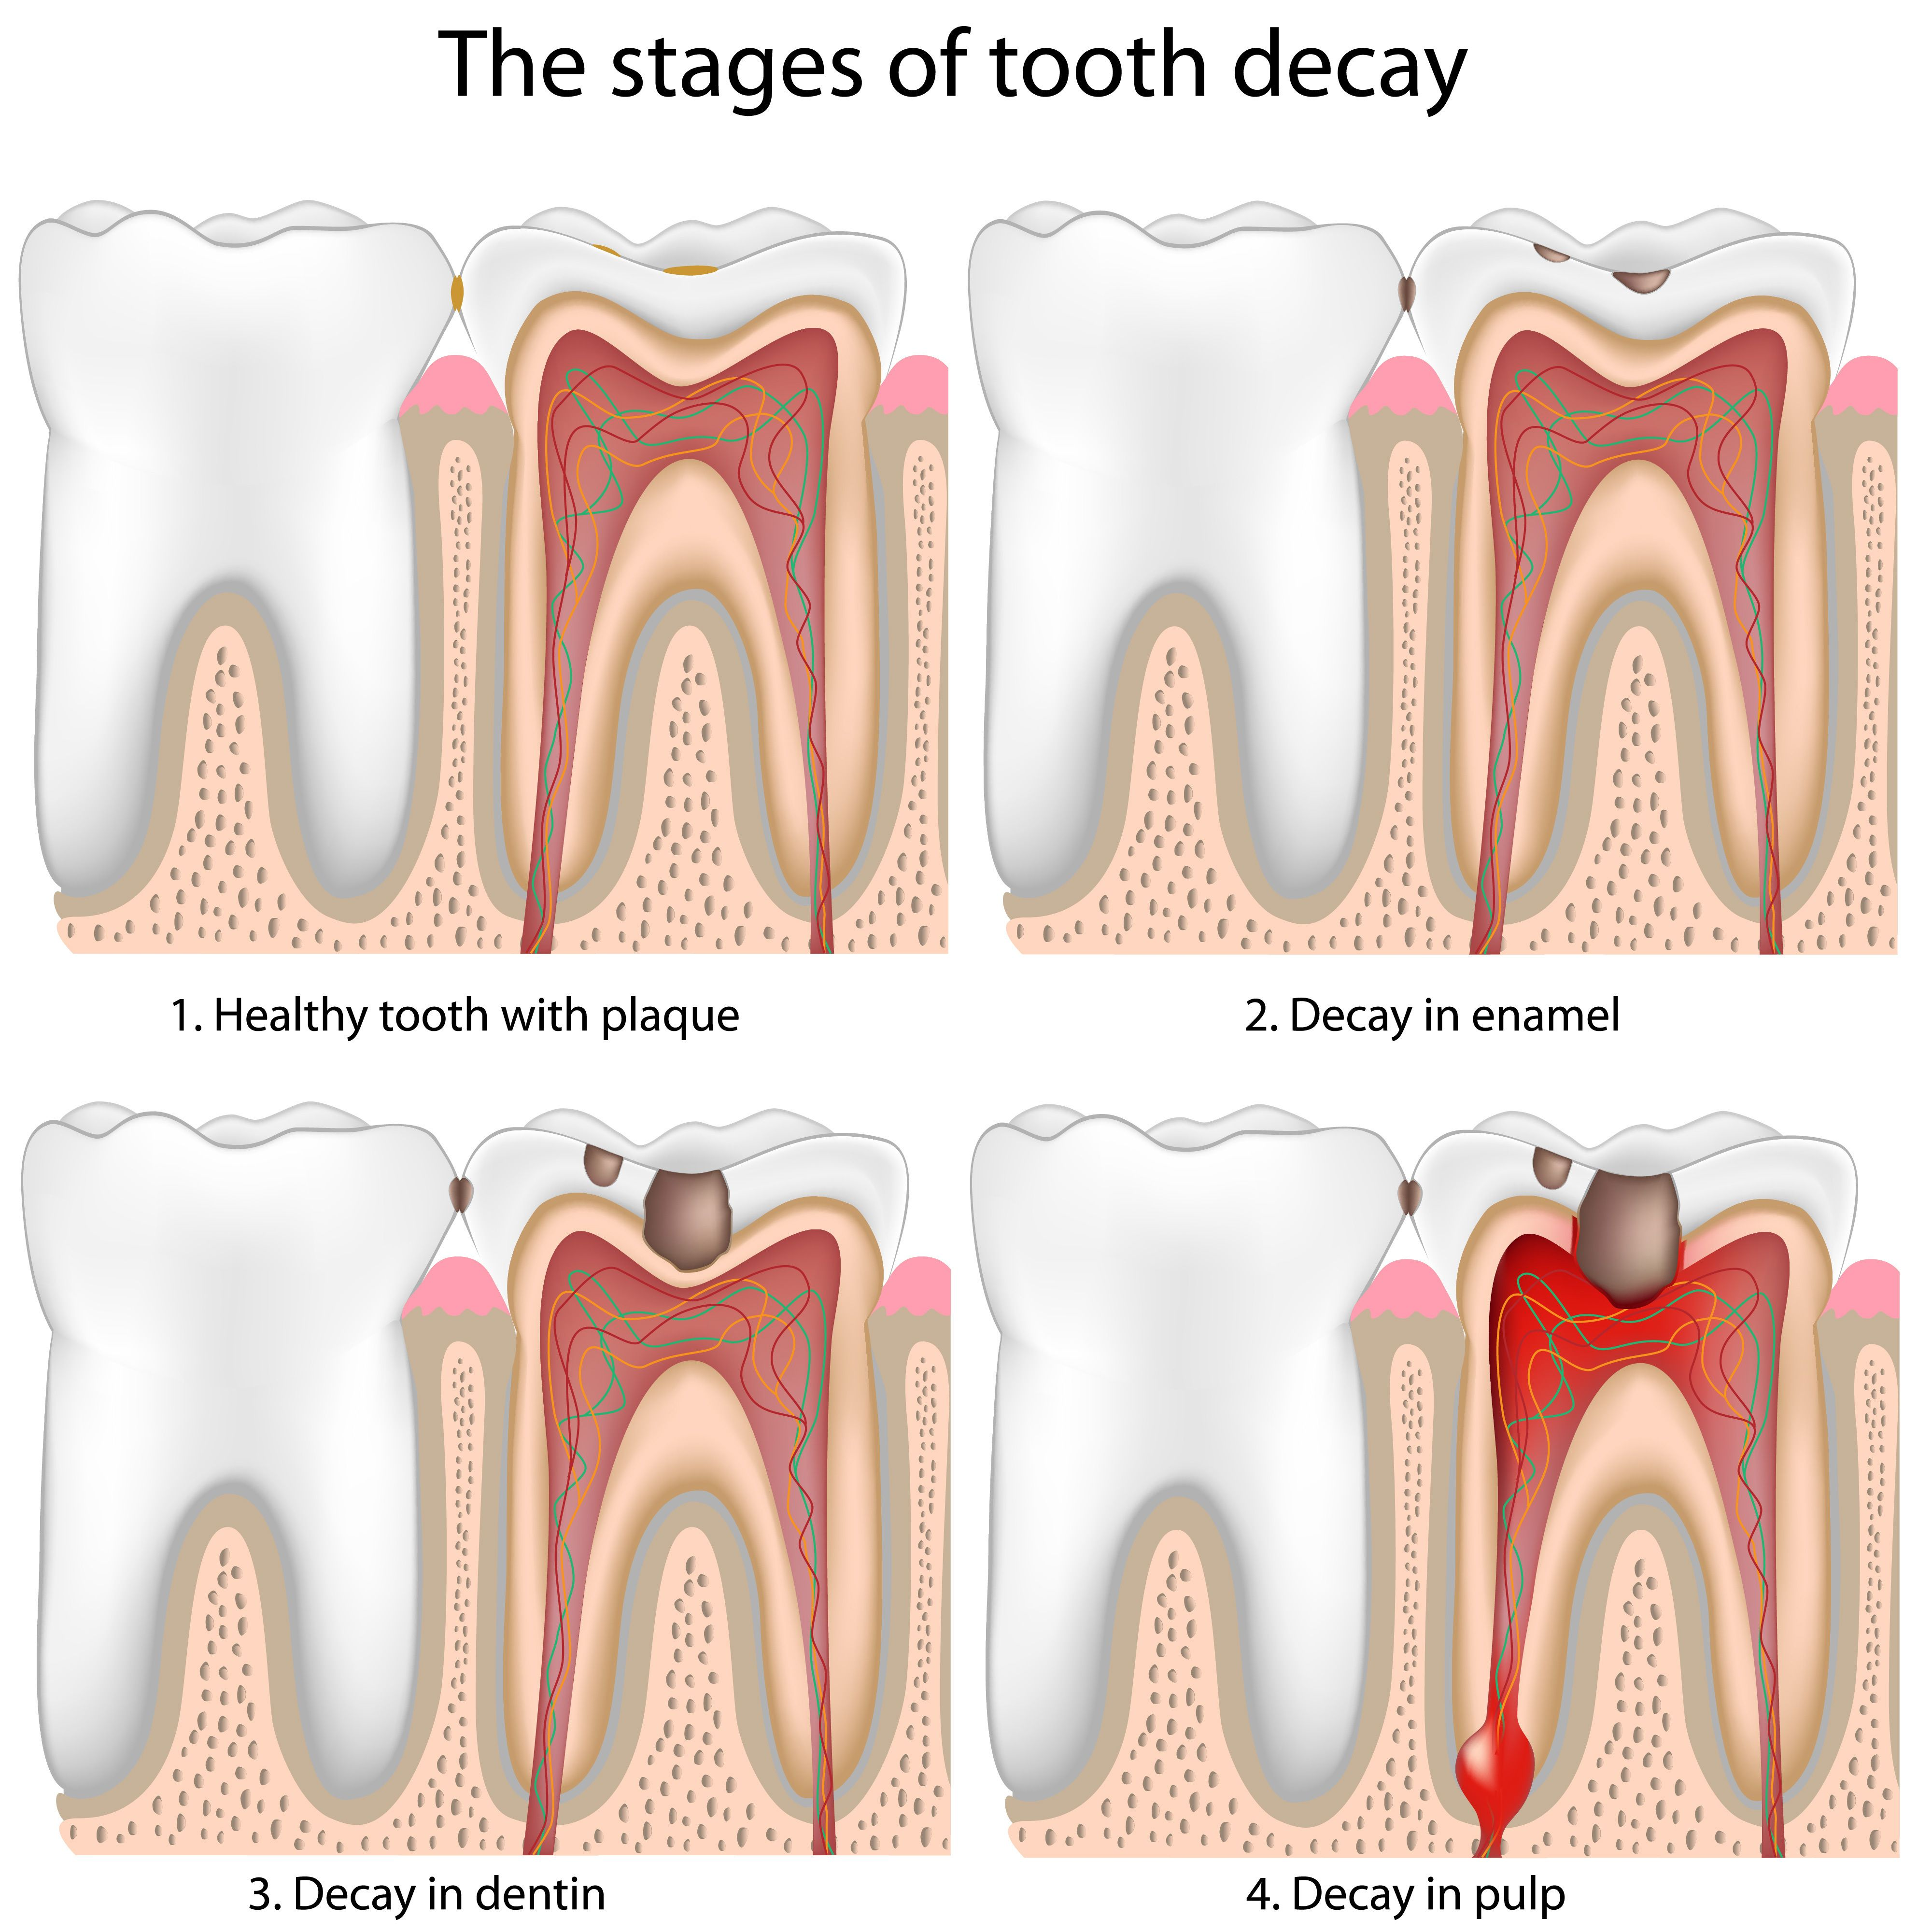 The stages of tooth decay progression